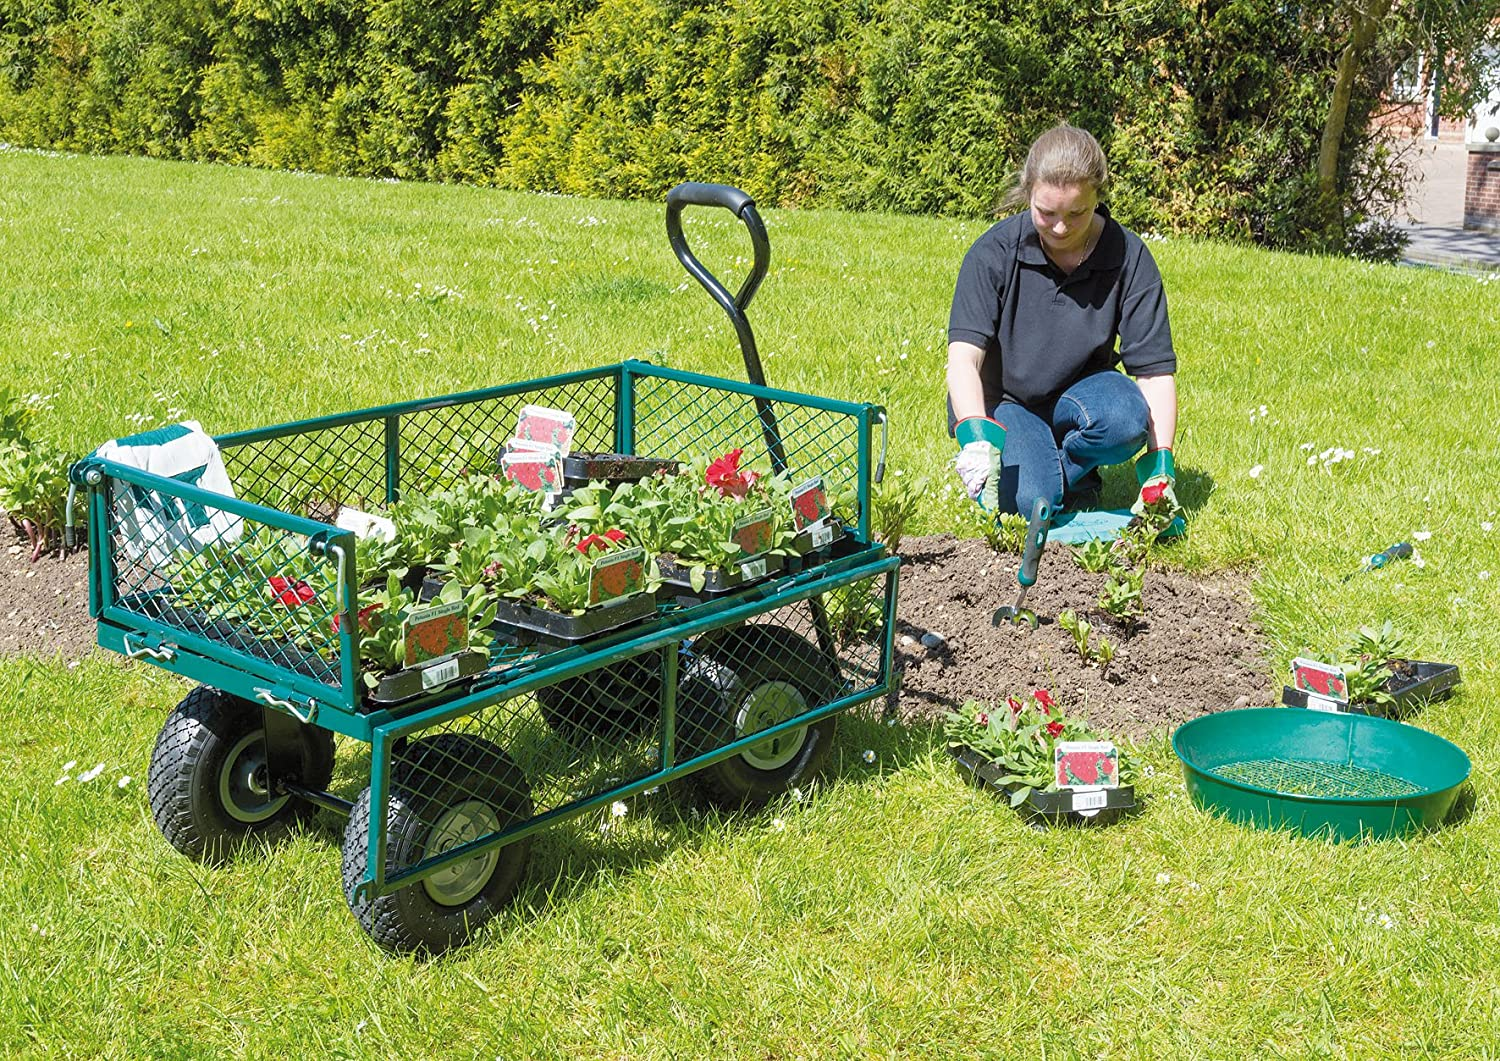 The Draper Steel Mesh is a heavy duty garden trolley.